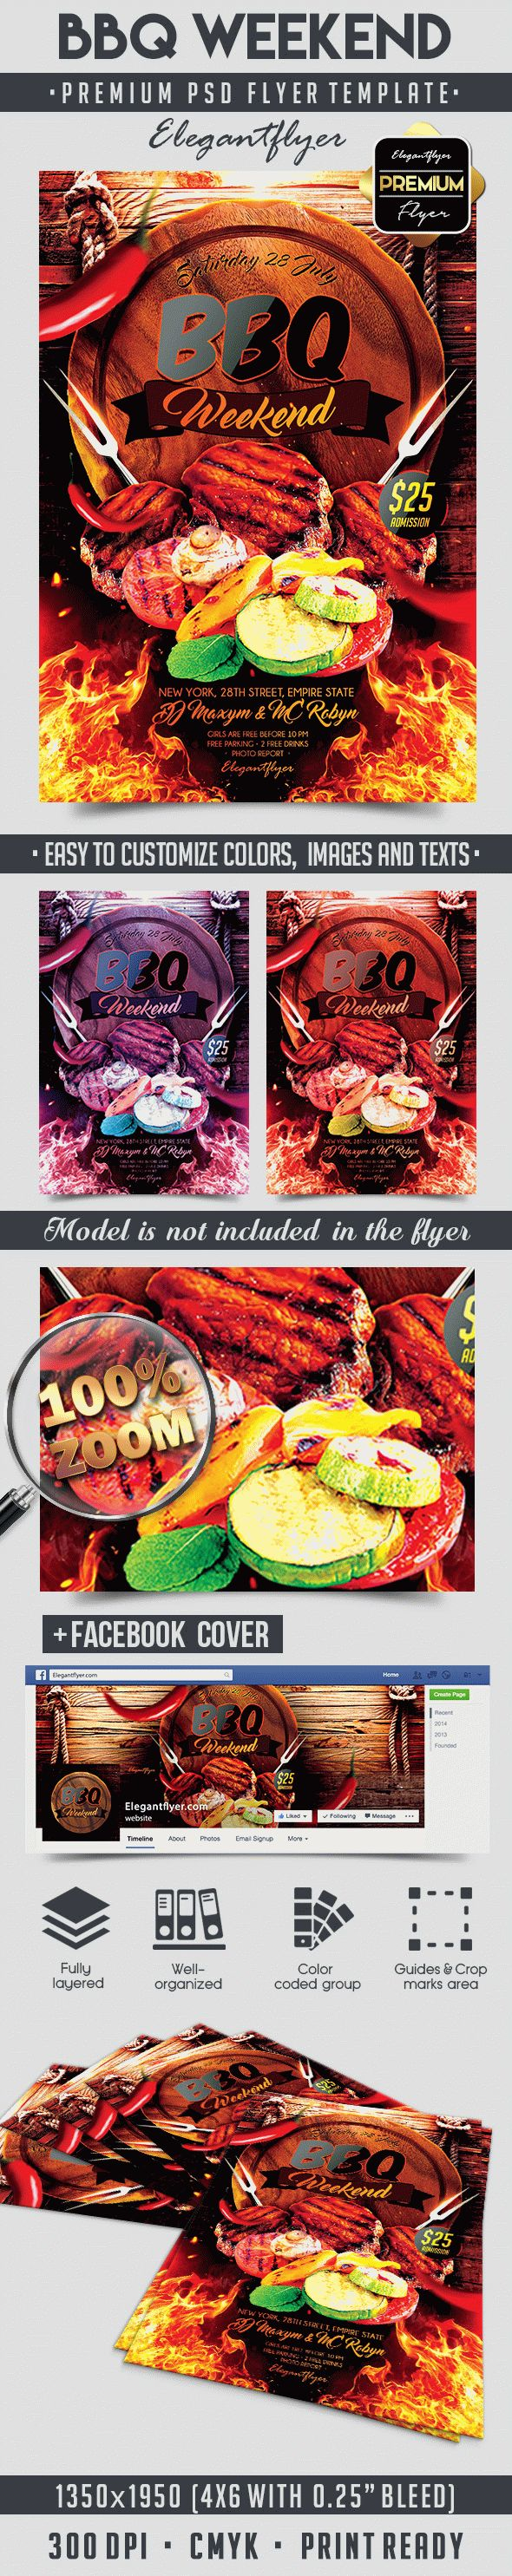 BBQ Weekend Party Template